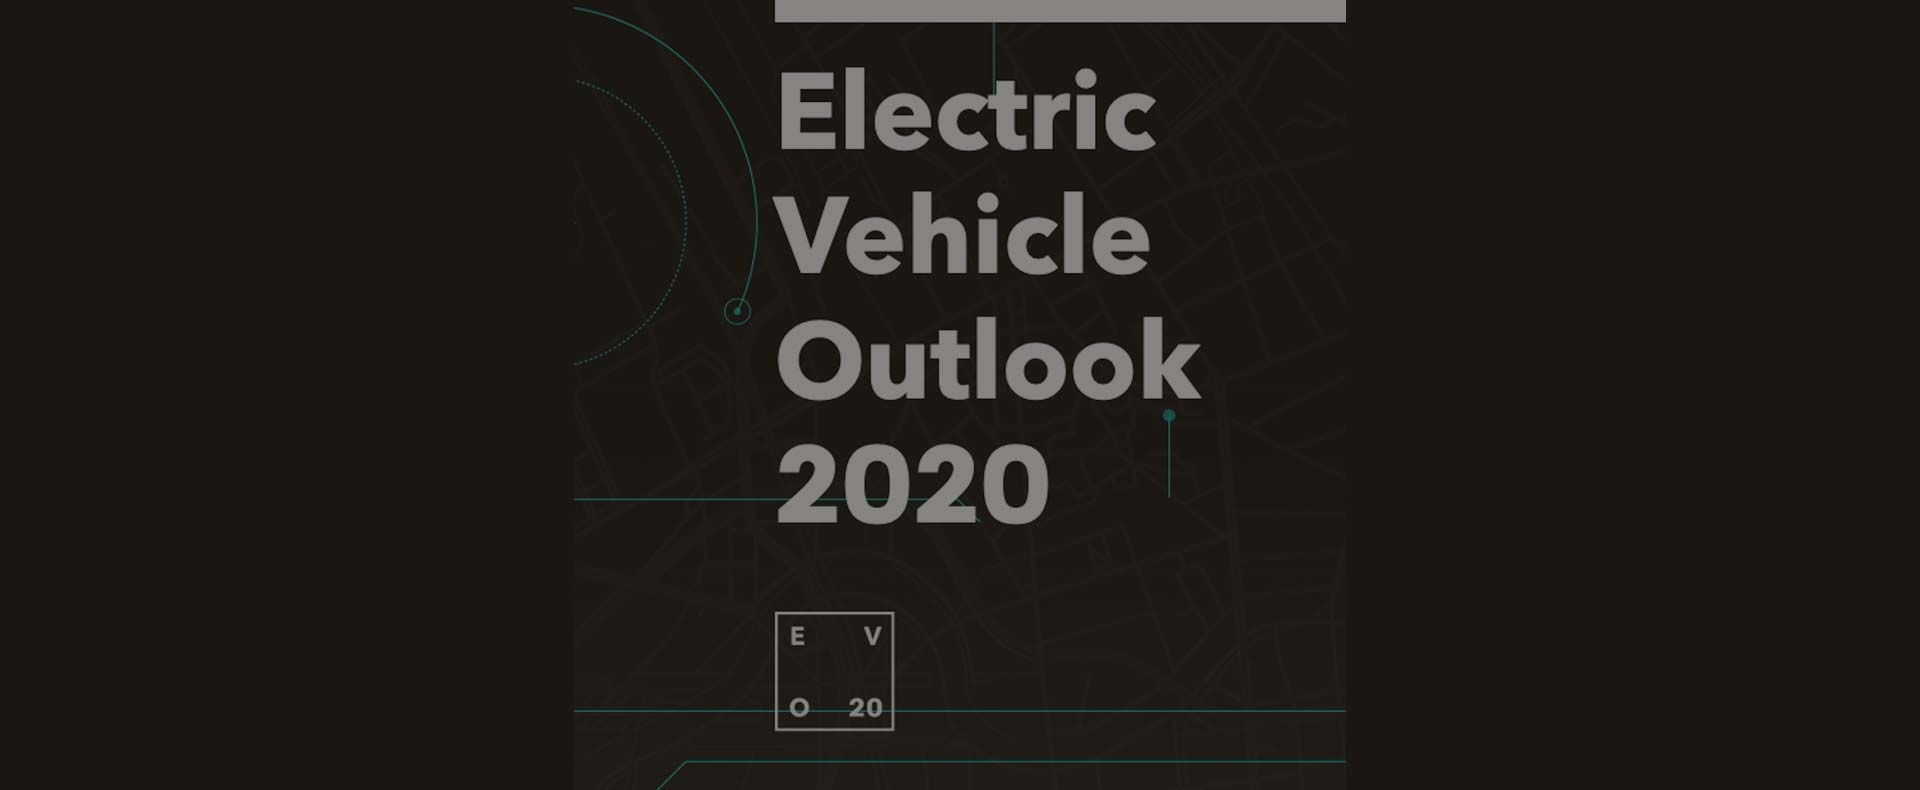 BNEF Electric Vehicle Outlook 2020